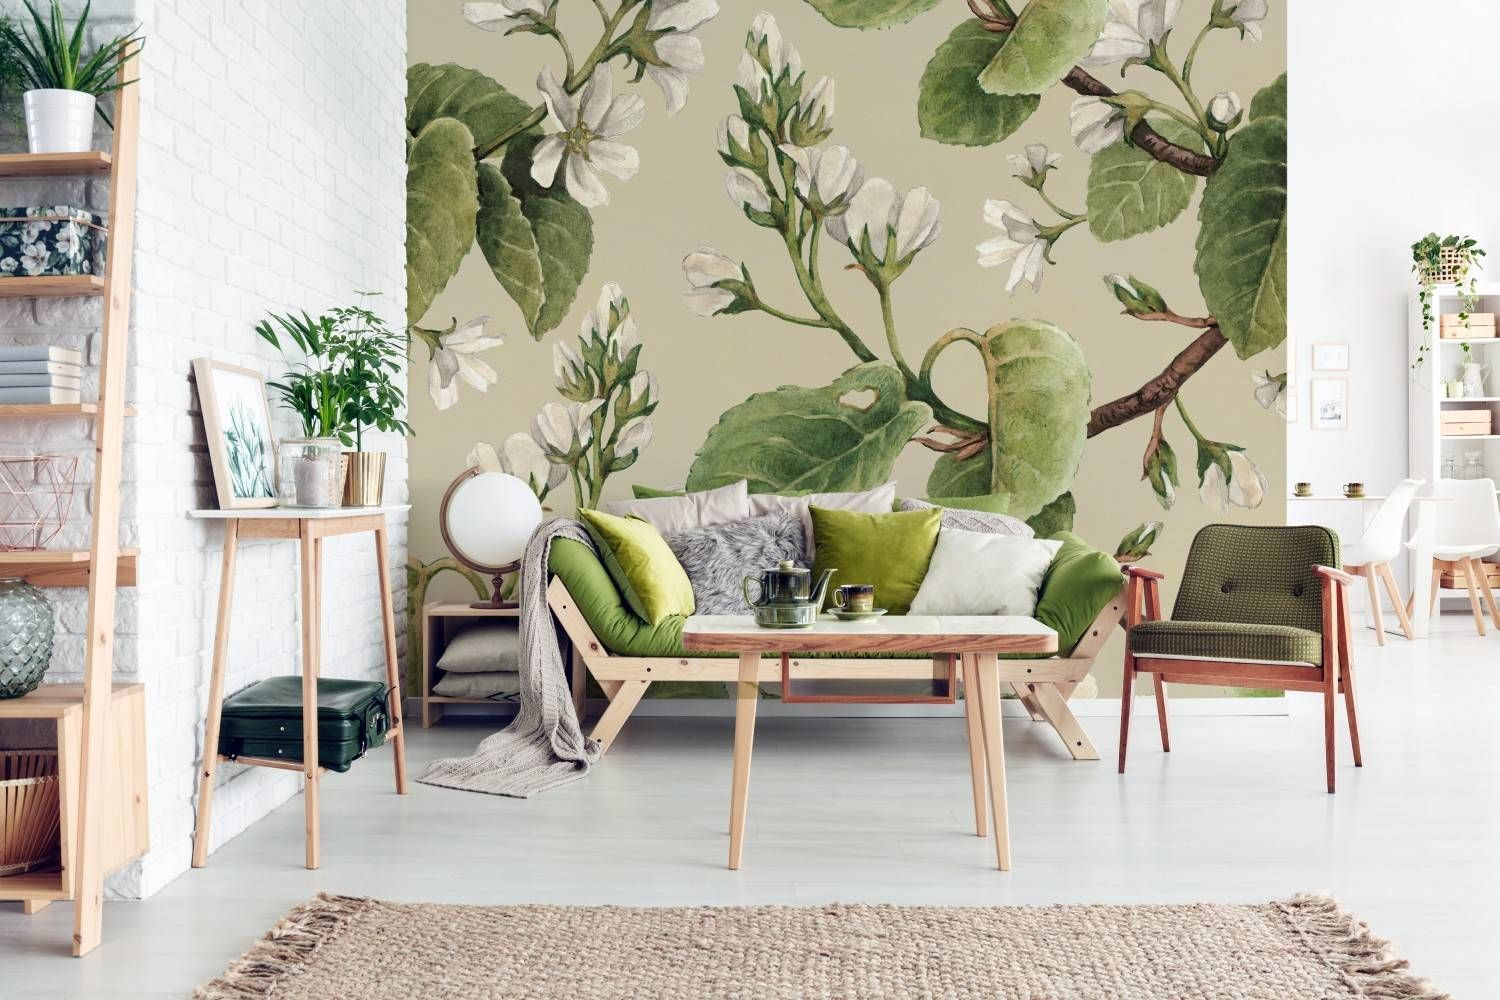 Spring tree • Retro - Living room - Nature - Flowers and plants - Wall Murals ✓ 365 Day Money Back Guarantee ✓ Consulting on the Pattern Selection ✓ 100% Safe✓ Set up online!